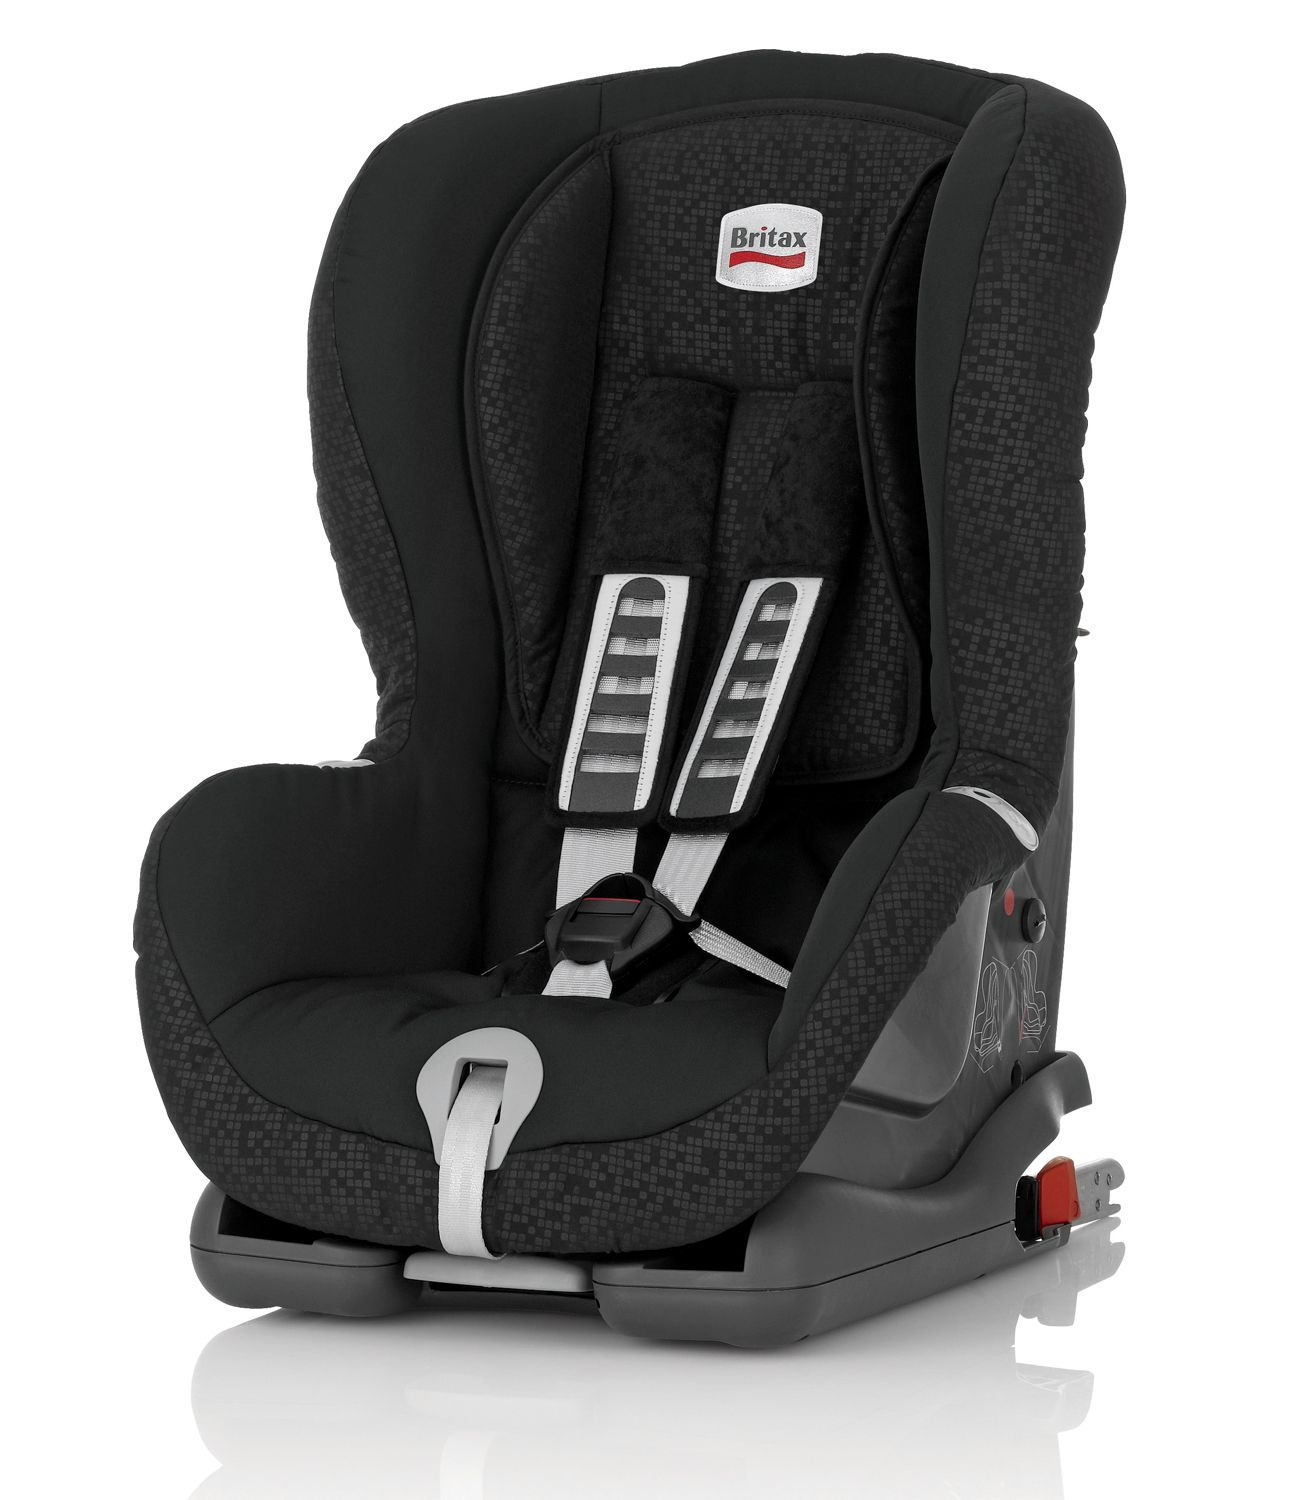 Britax Duo Plus John Lewis Zoom 1 Baby Car Seats Car Seats Travel Systems For Baby